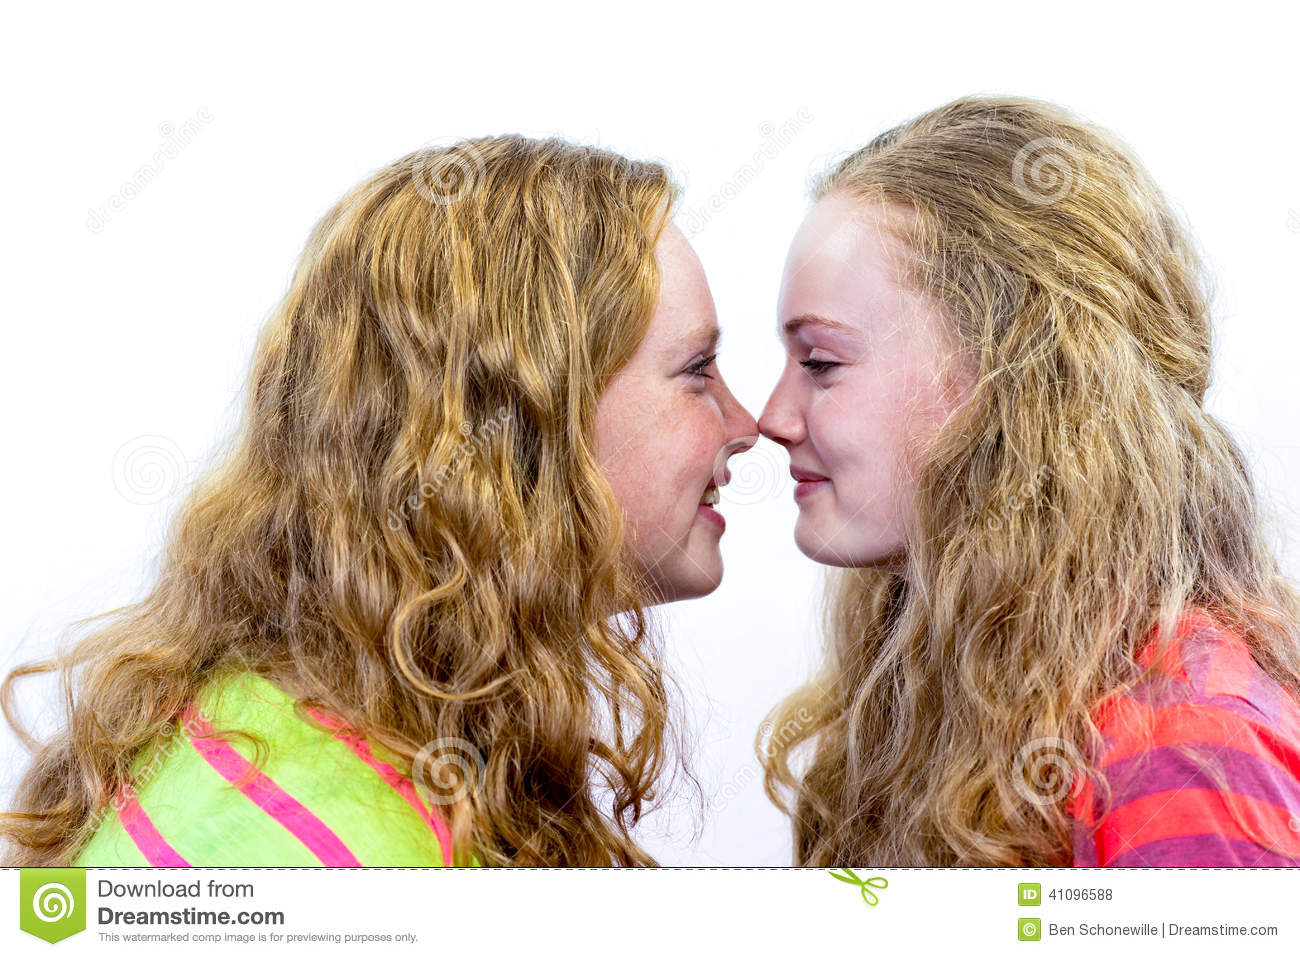 Two women touching each other